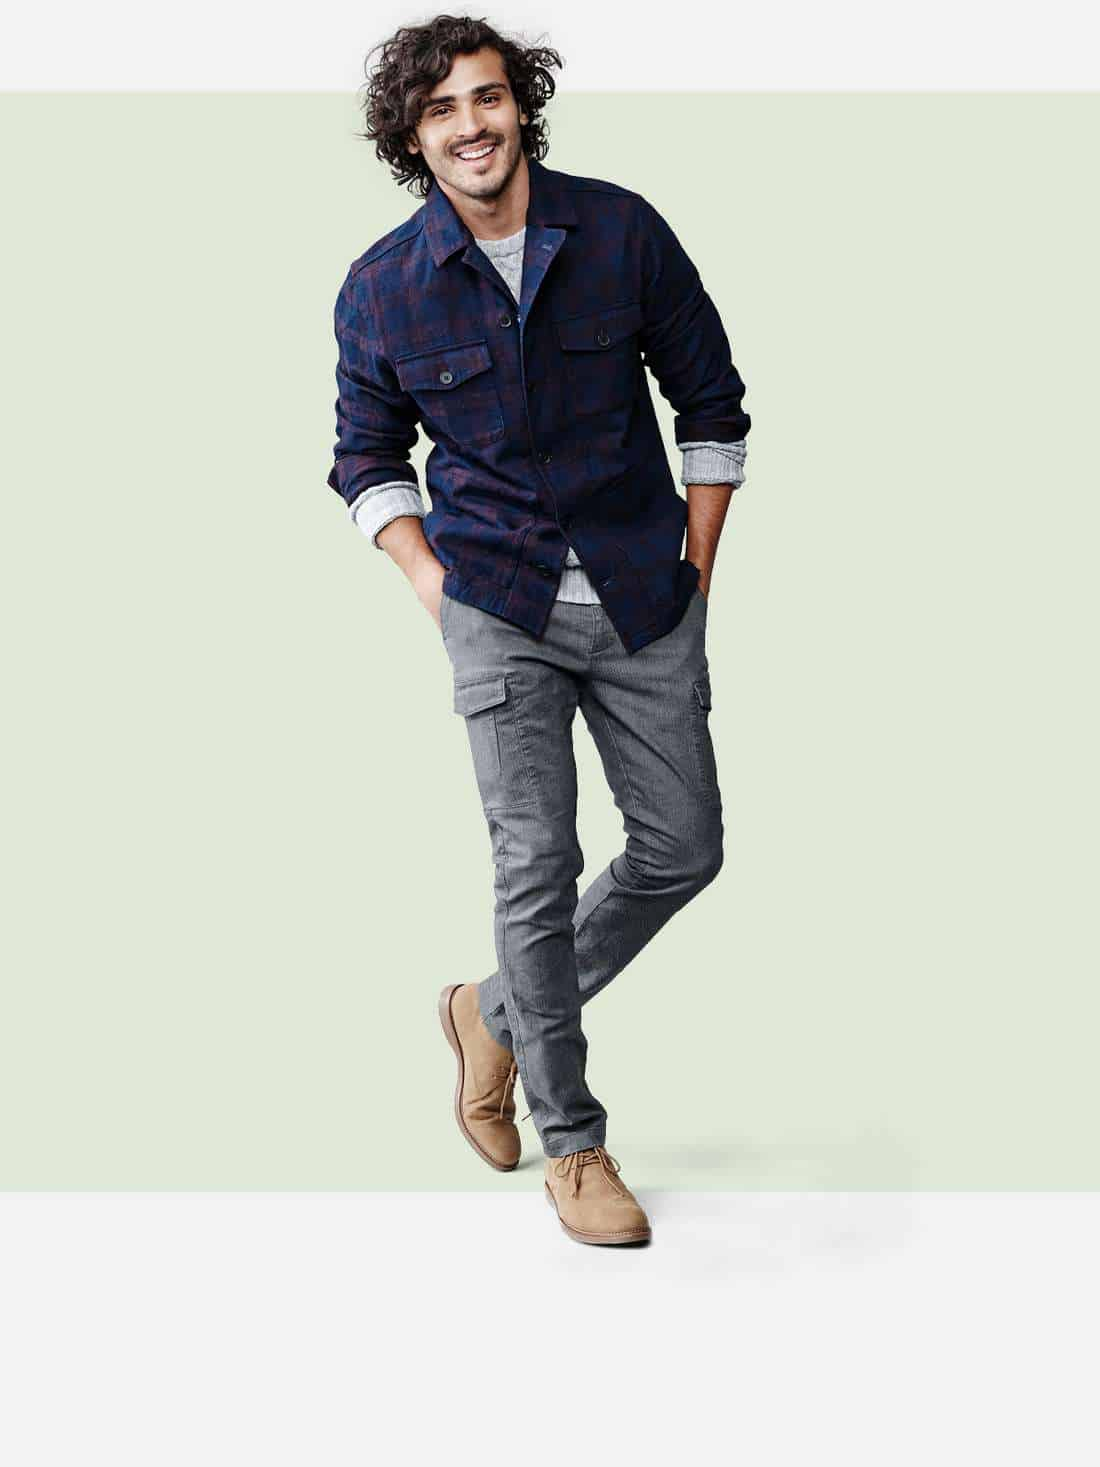 A man modeling shirts and pants from Target